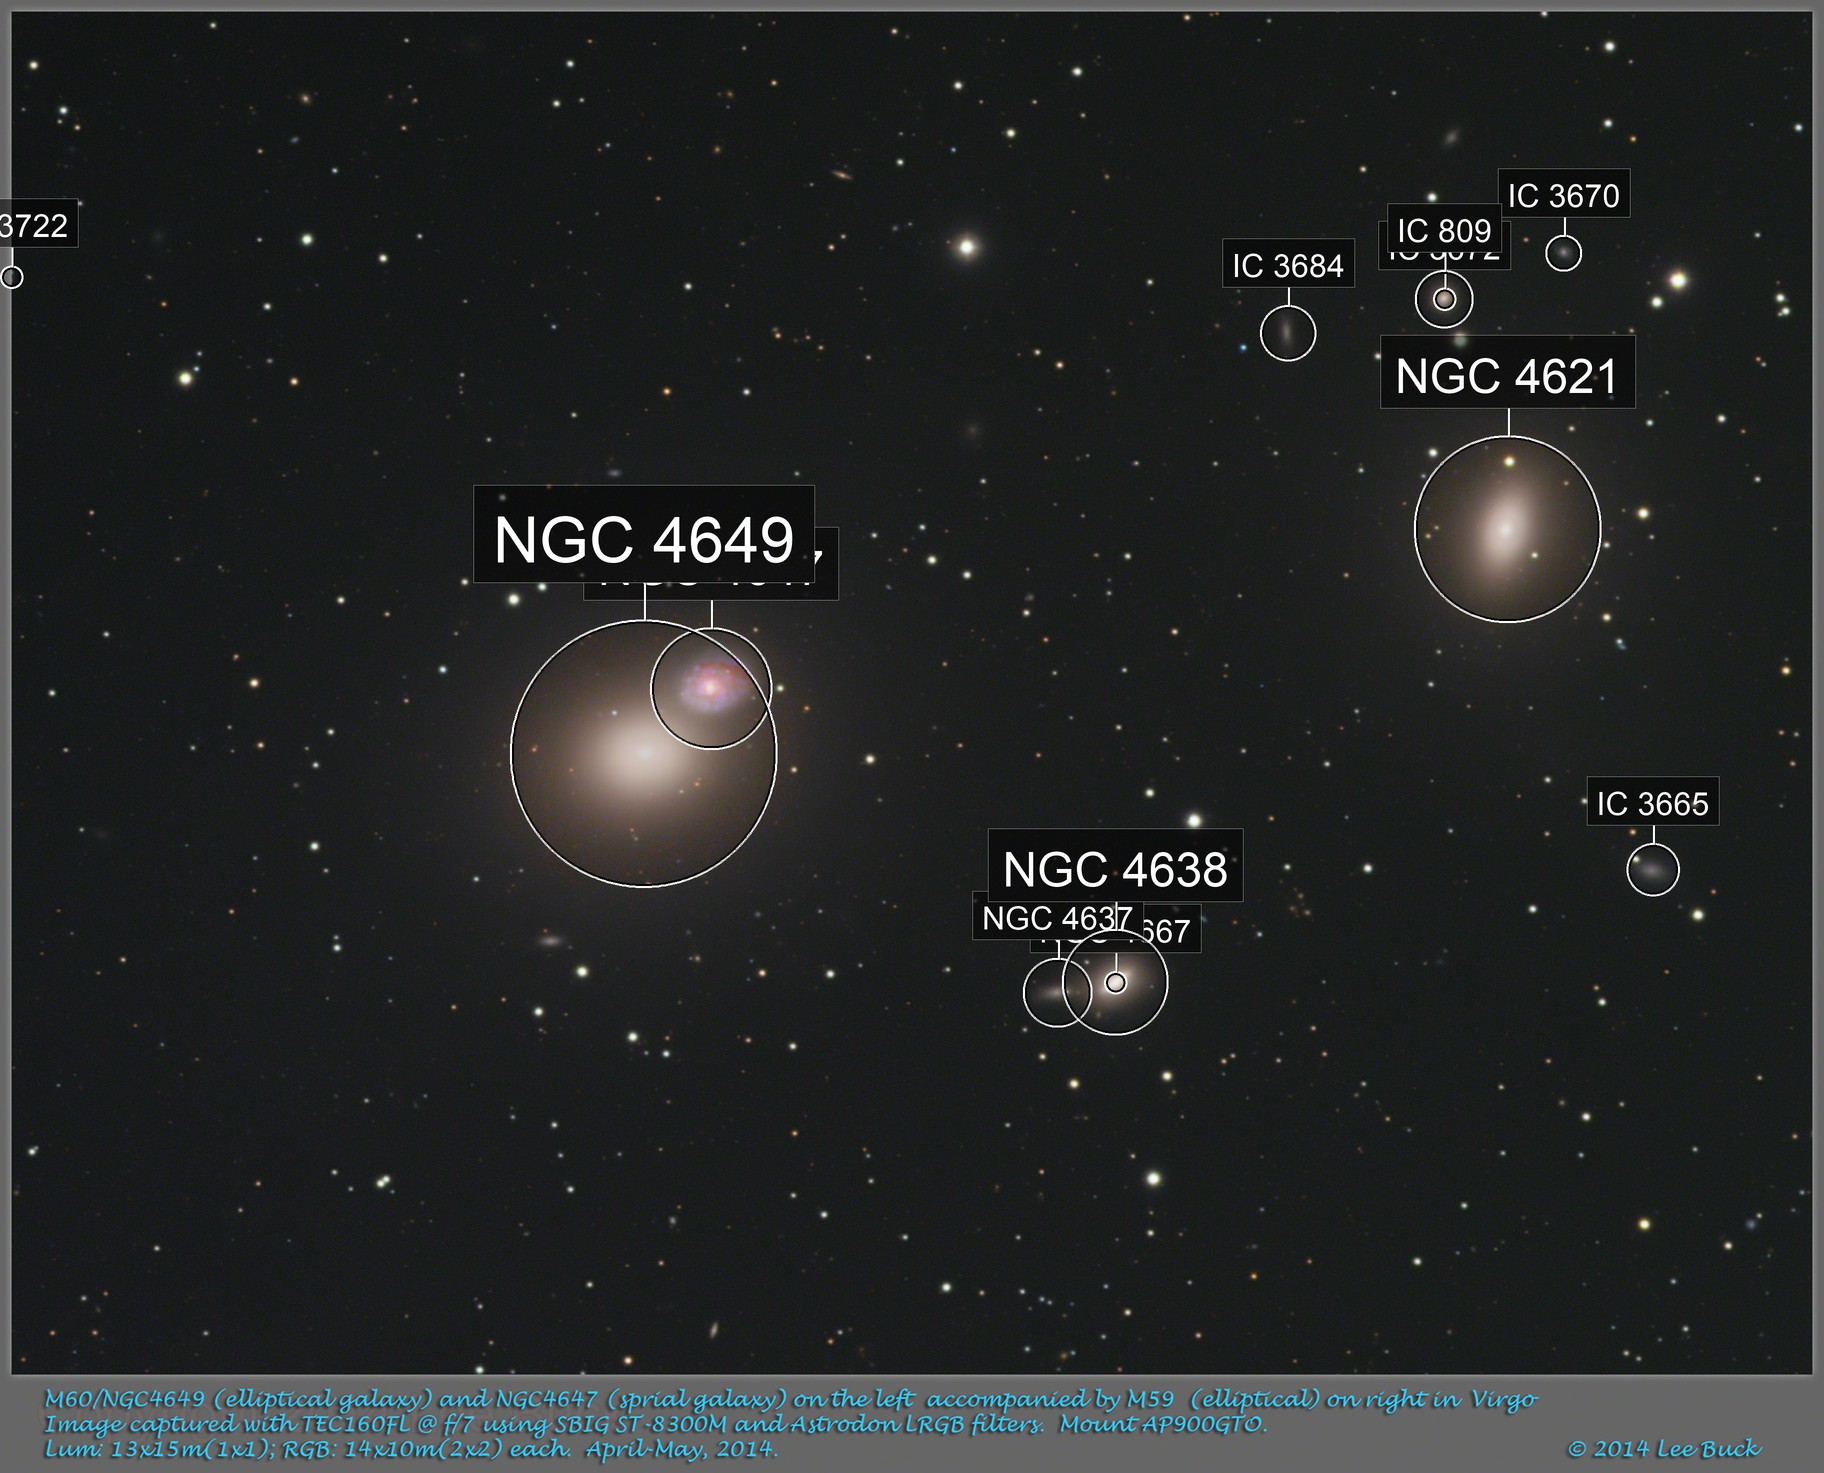 M59 (right) and M60 (left) in Virgo